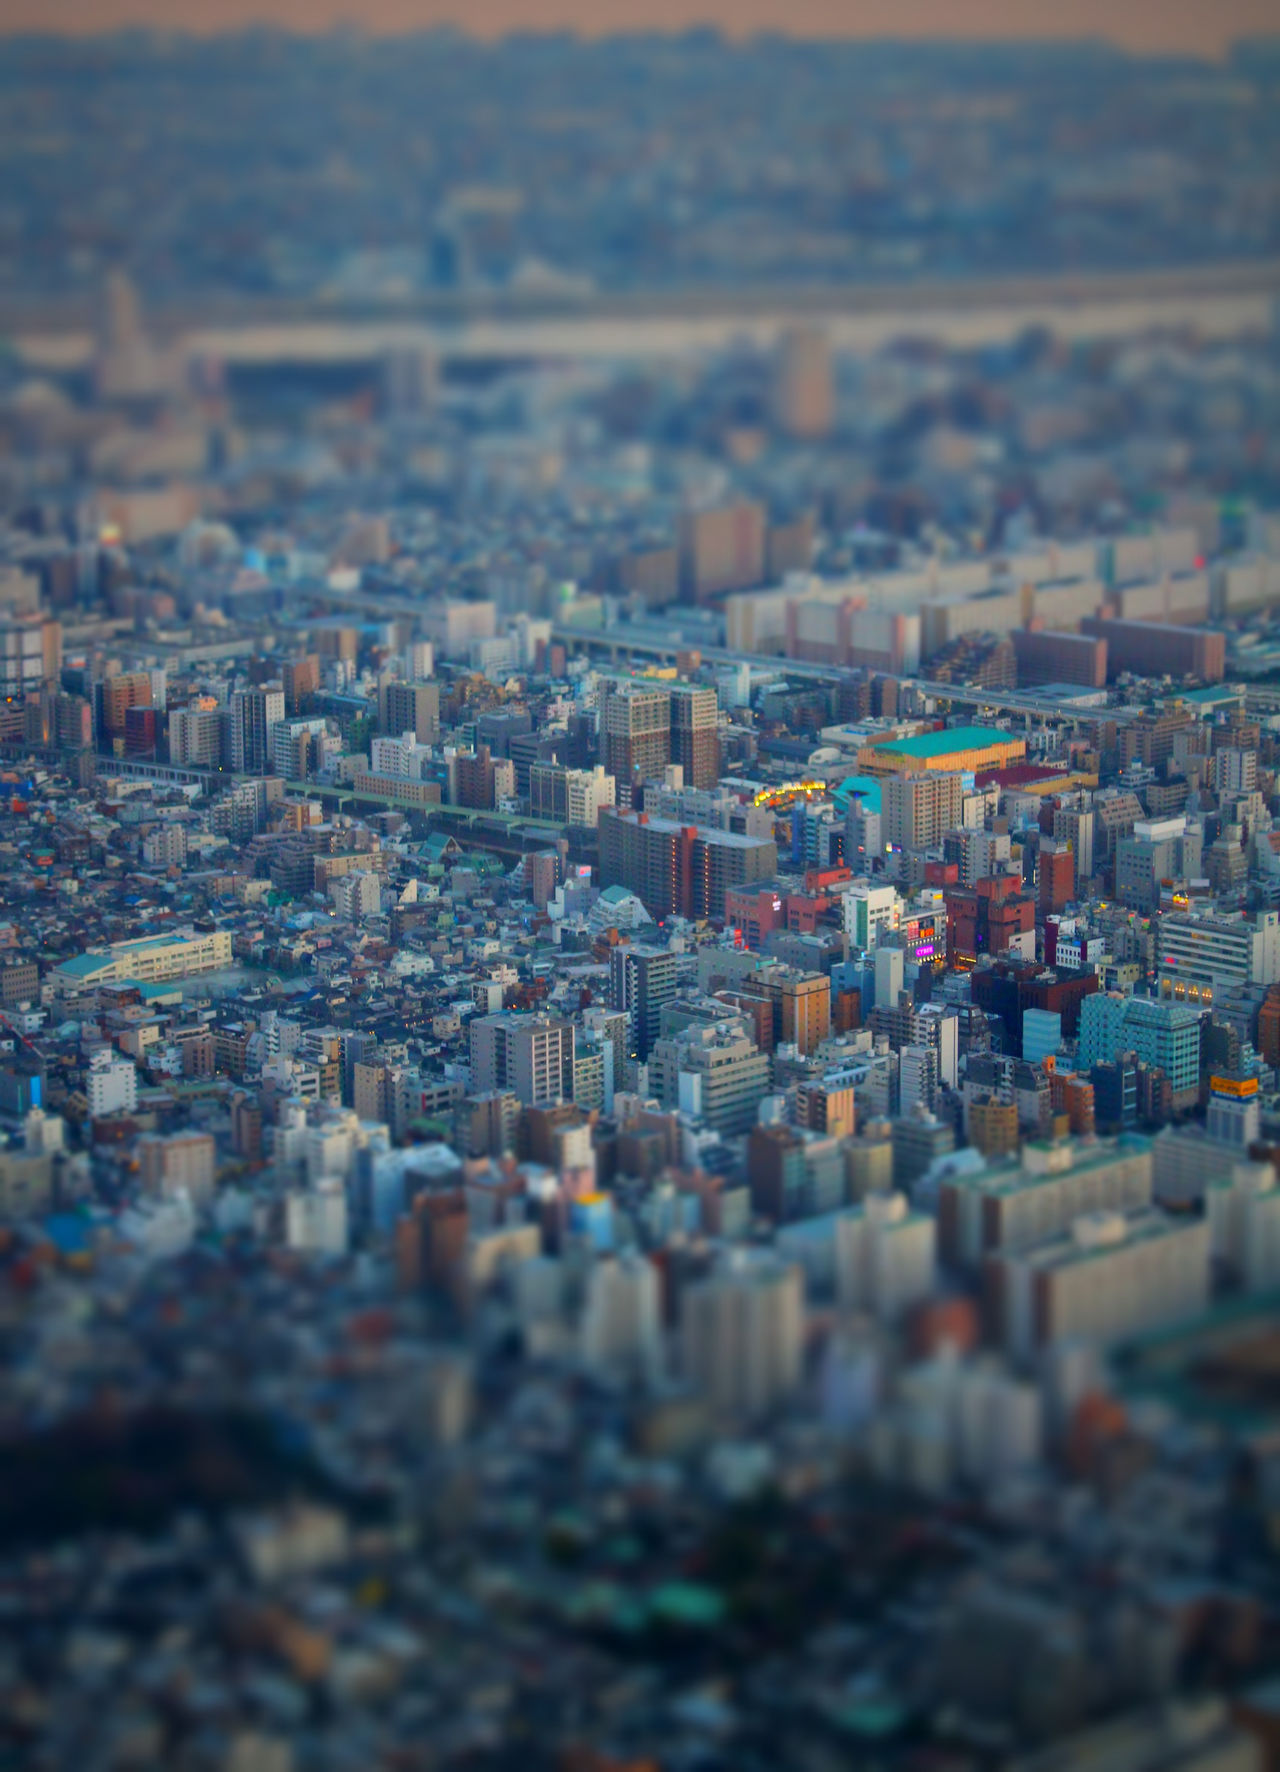 Architecture City City Cityscape Cityscape Day High Angle View Outdoors Tilt-shift Tiltshift Tokyo Tokyo Days Tokyo Sky Tree Tokyo Street Photography Tokyo,Japan Urban スカイツリー ミニチュア 東京 都会